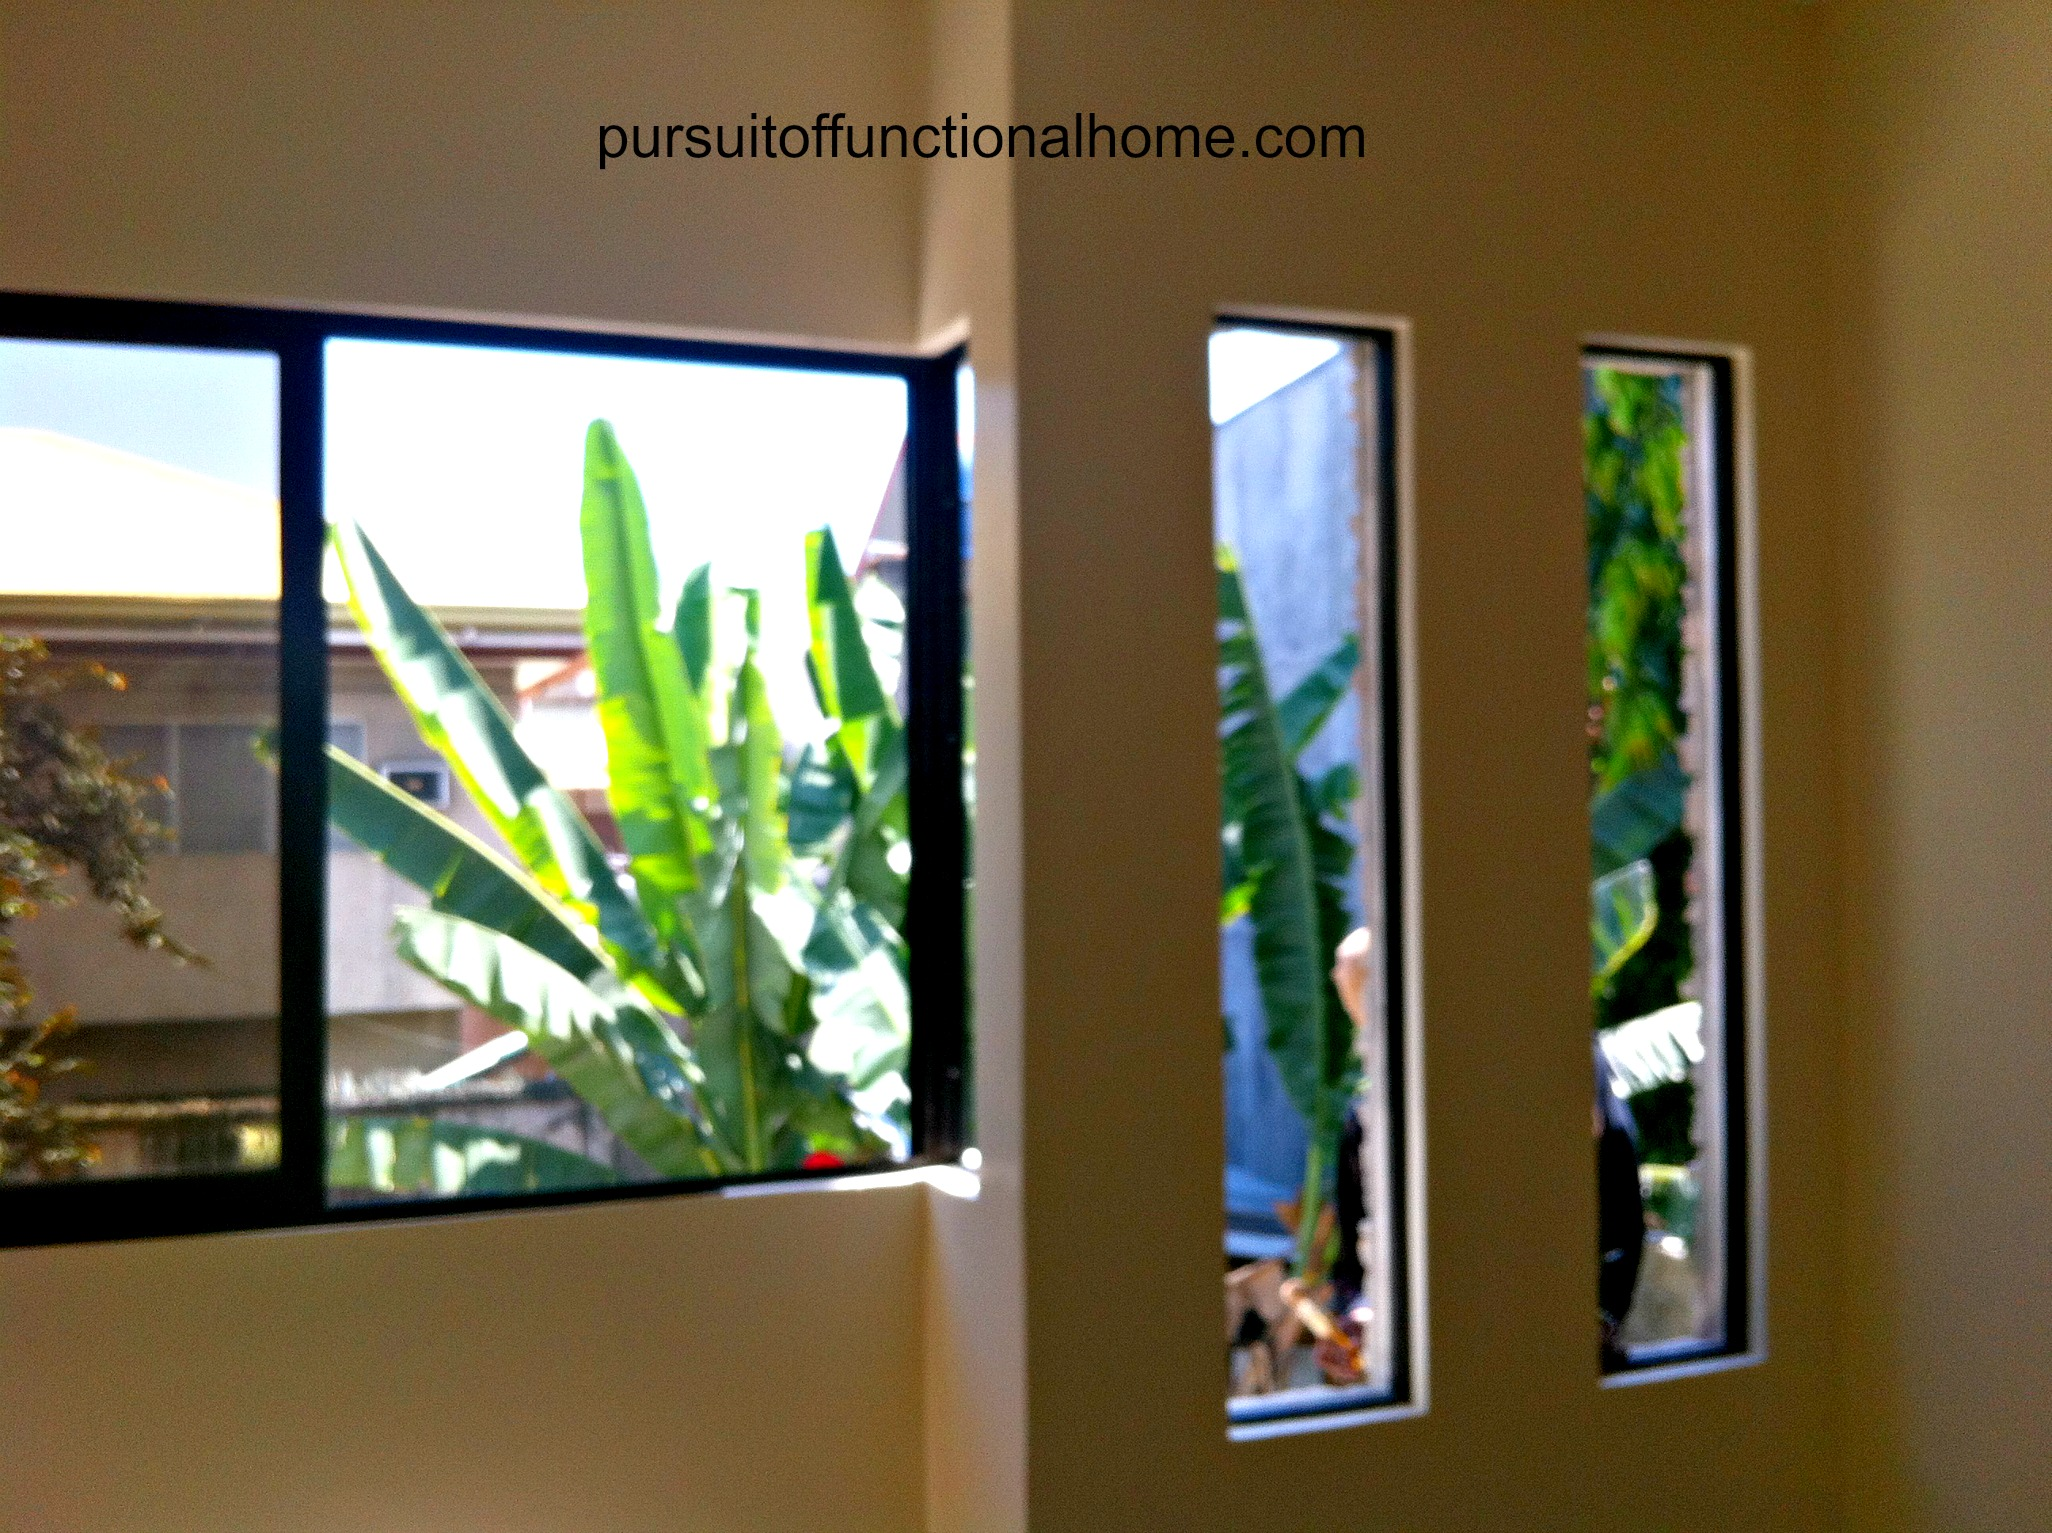 masters bedroom windows. Under construction. Cebu City Town House